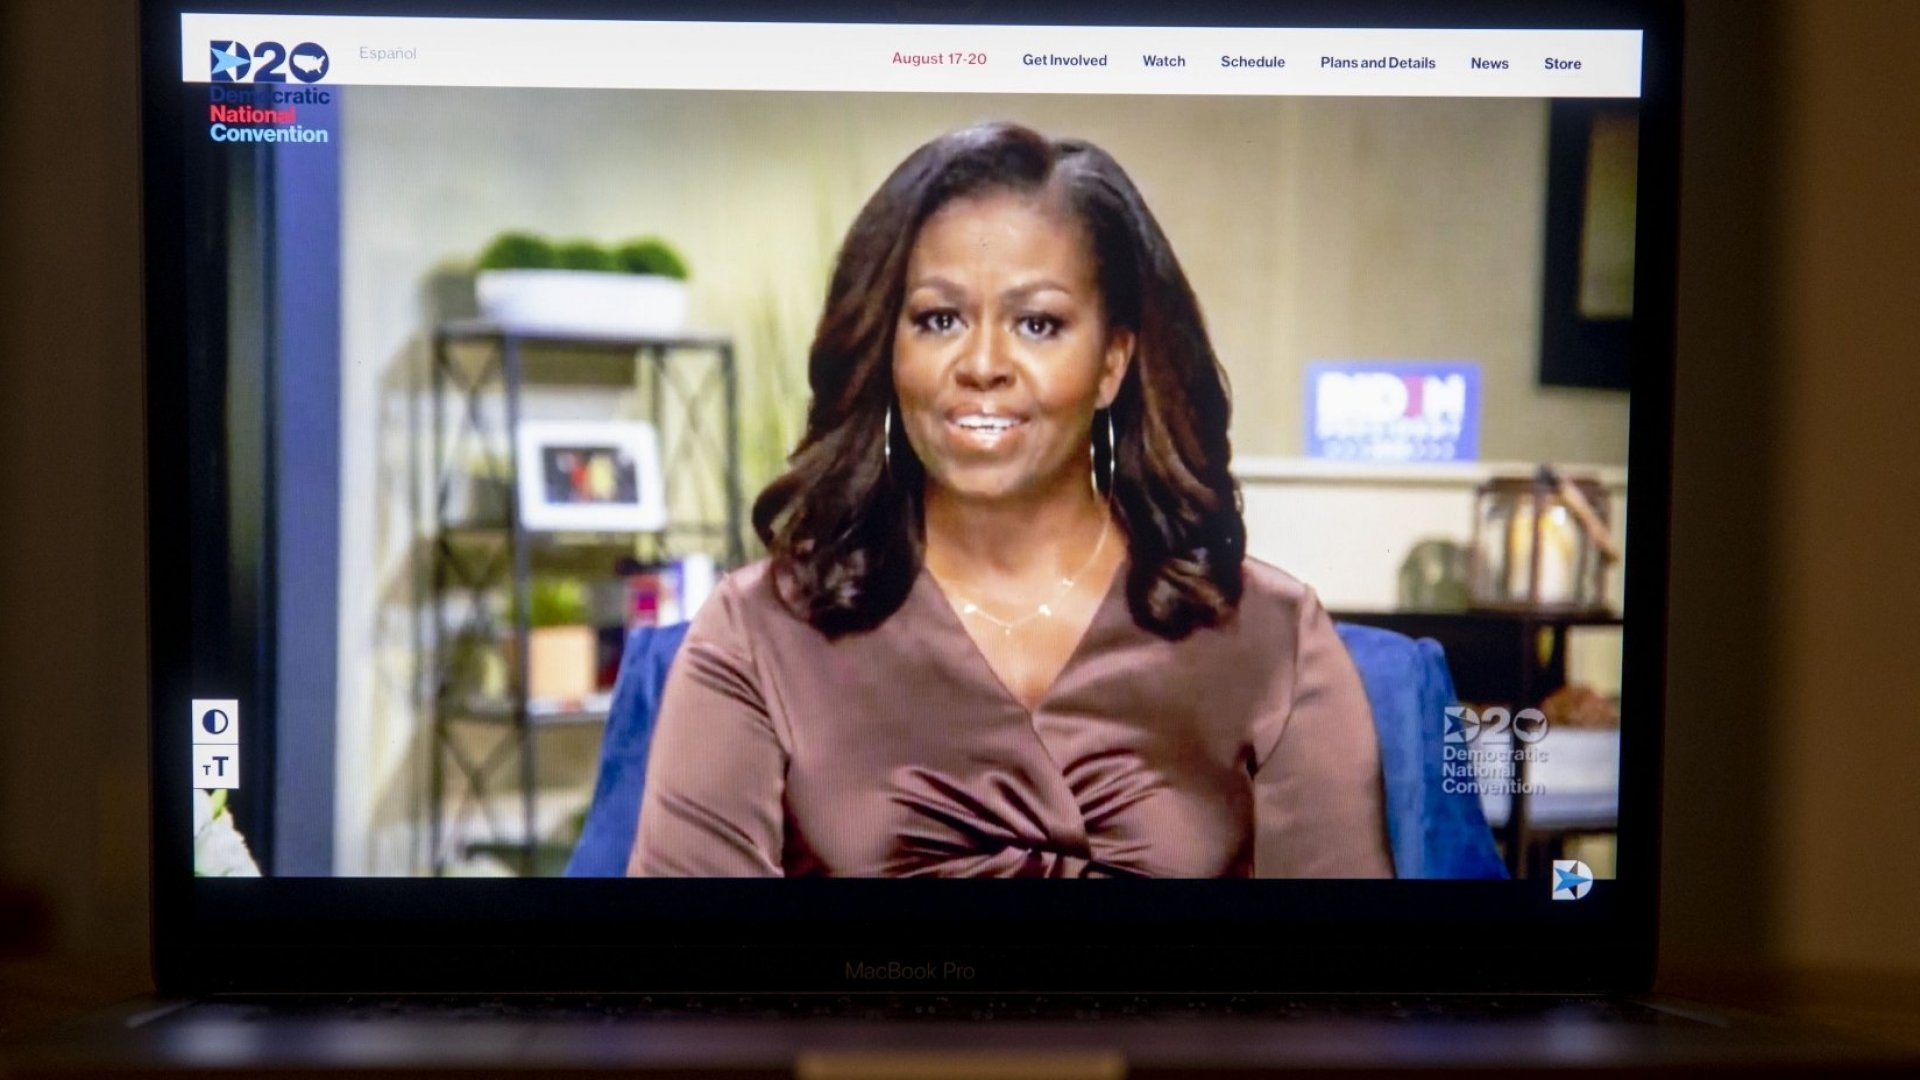 3 Public Speaking Skills You Can Learn From Michelle Obama's Speech